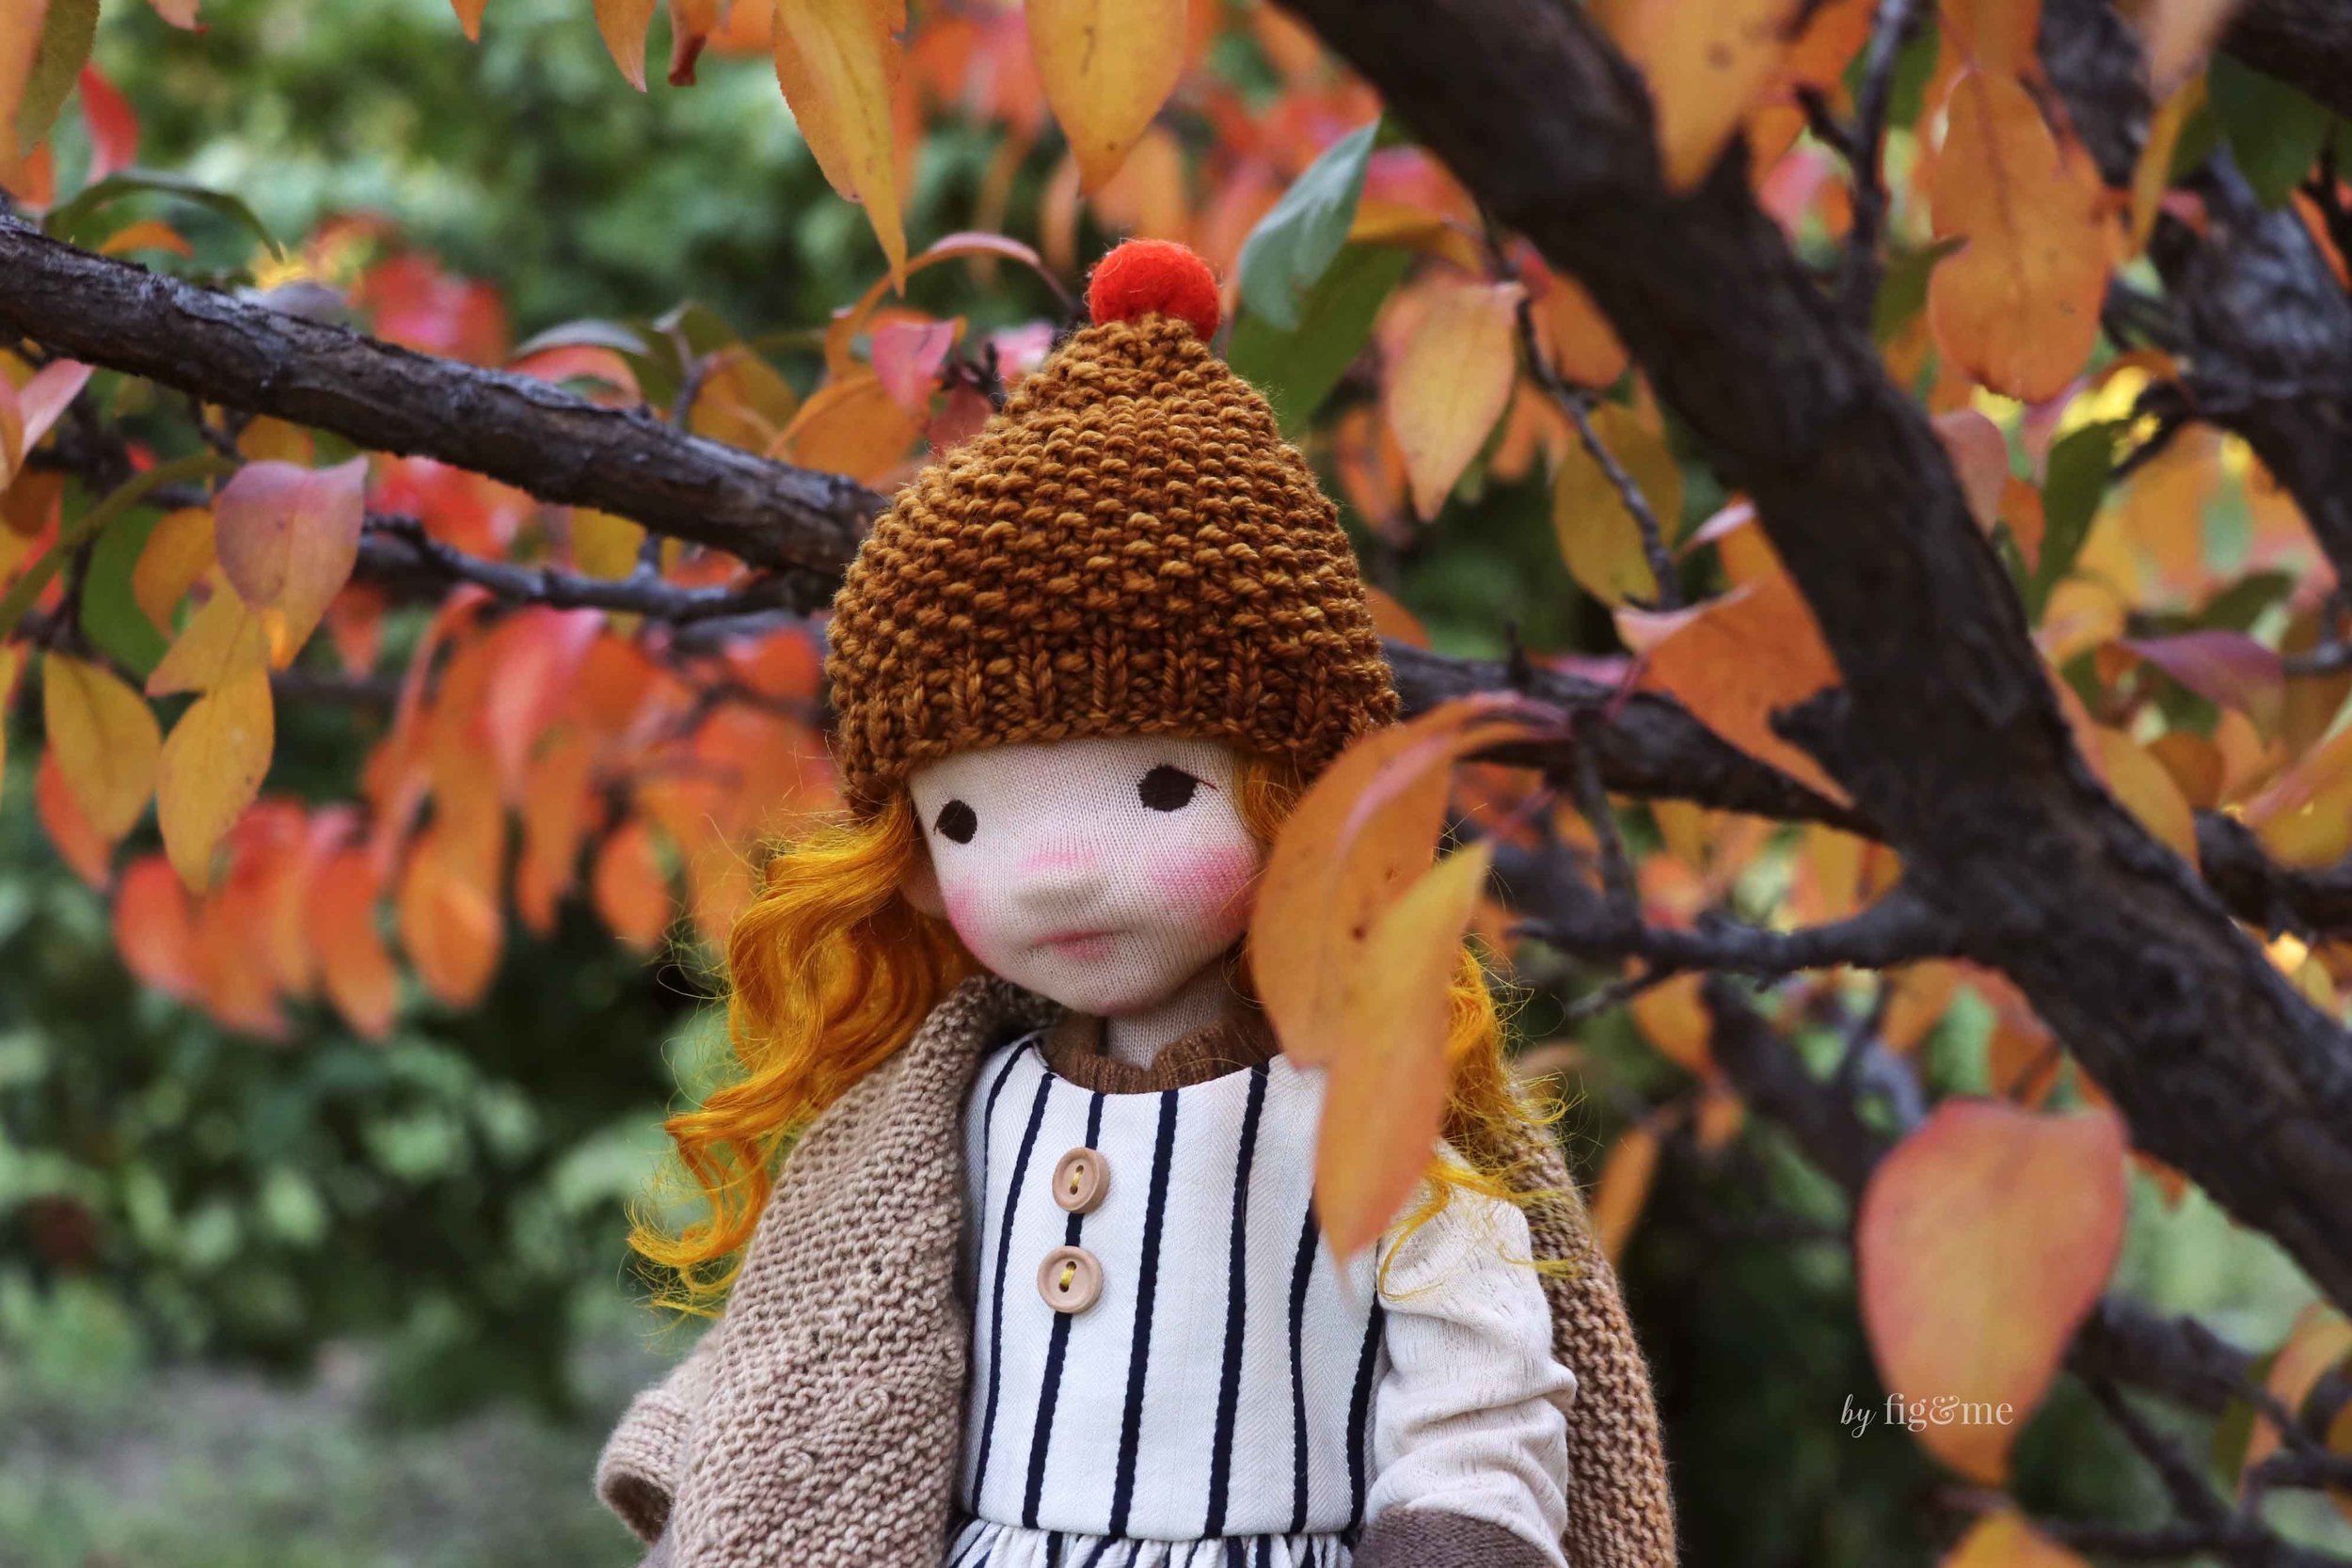 Autumn People. By Fig an Me.